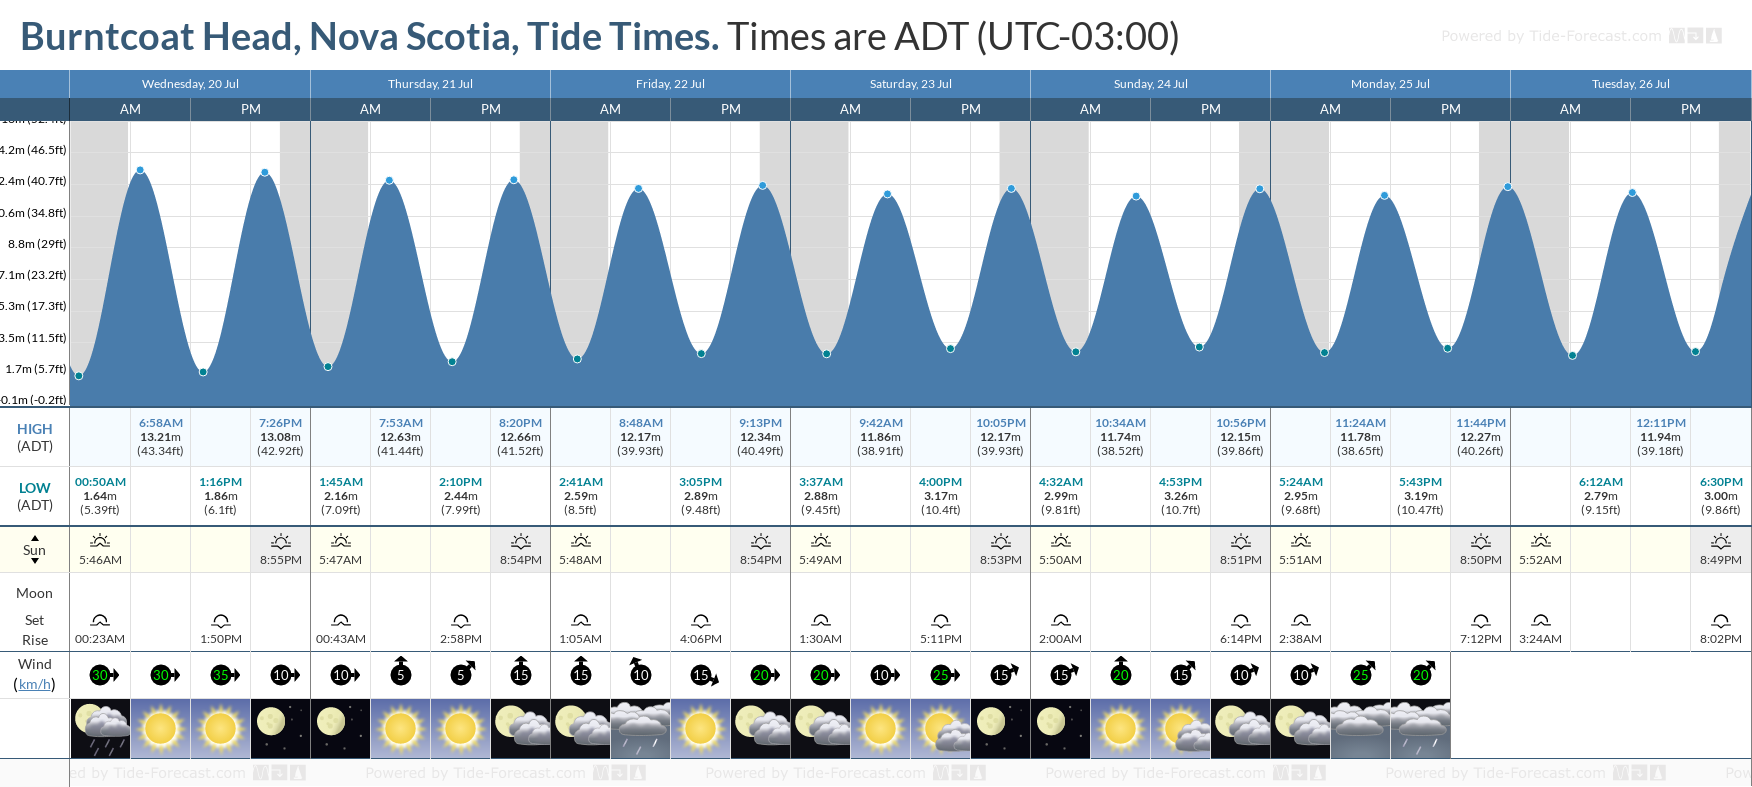 Burntcoat Head, Nova Scotia Tide Chart including high and low tide tide times for the next 7 days